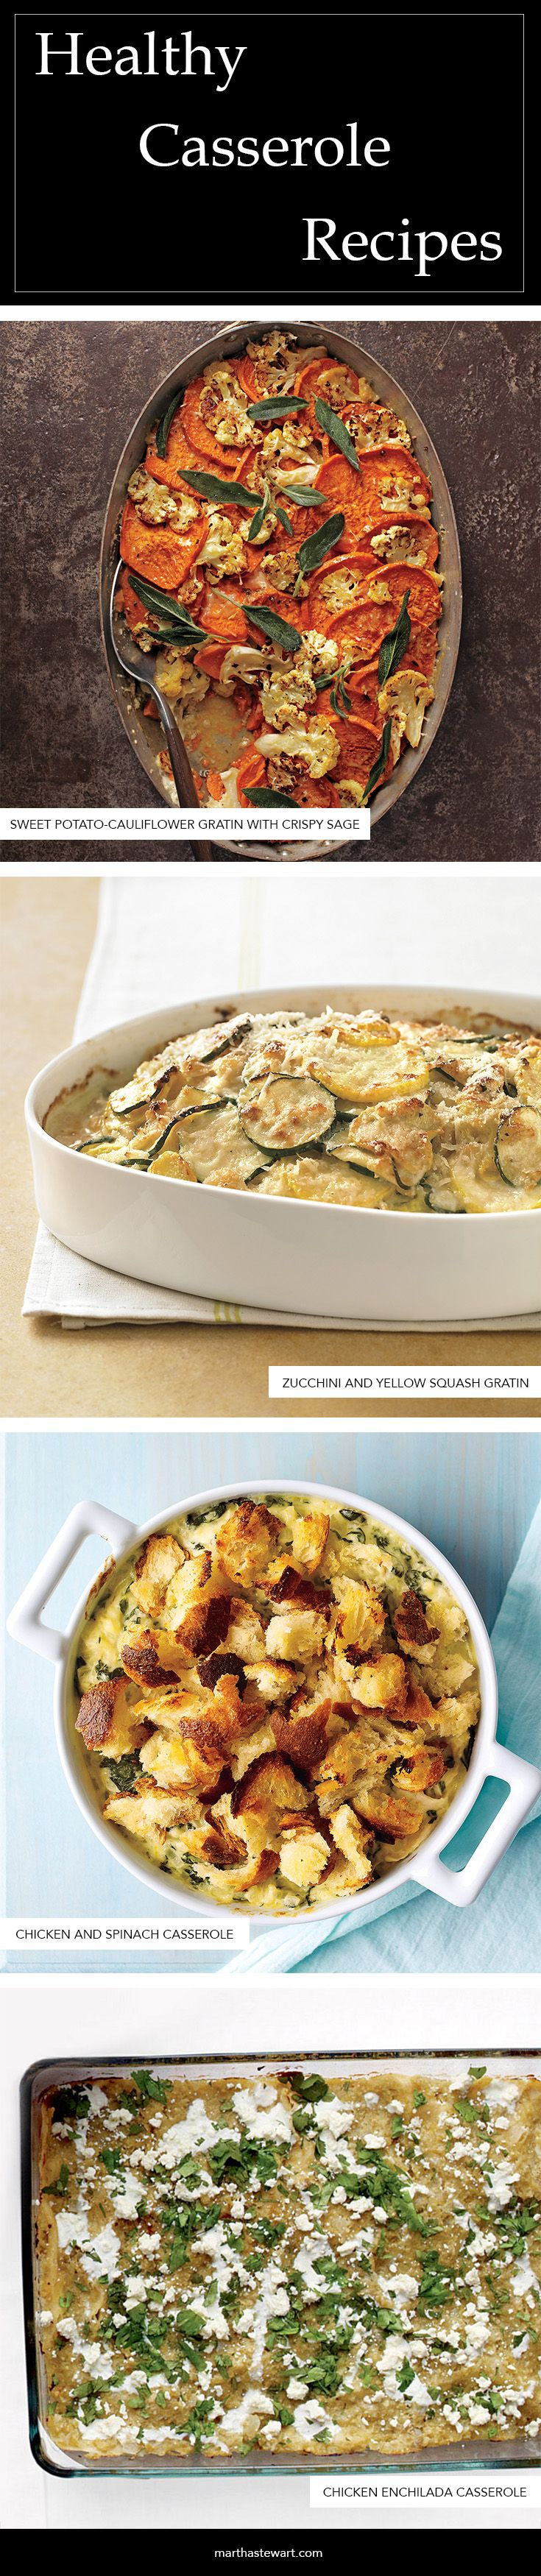 Healthy Casserole Recipes You Won t Believe Are Good for You